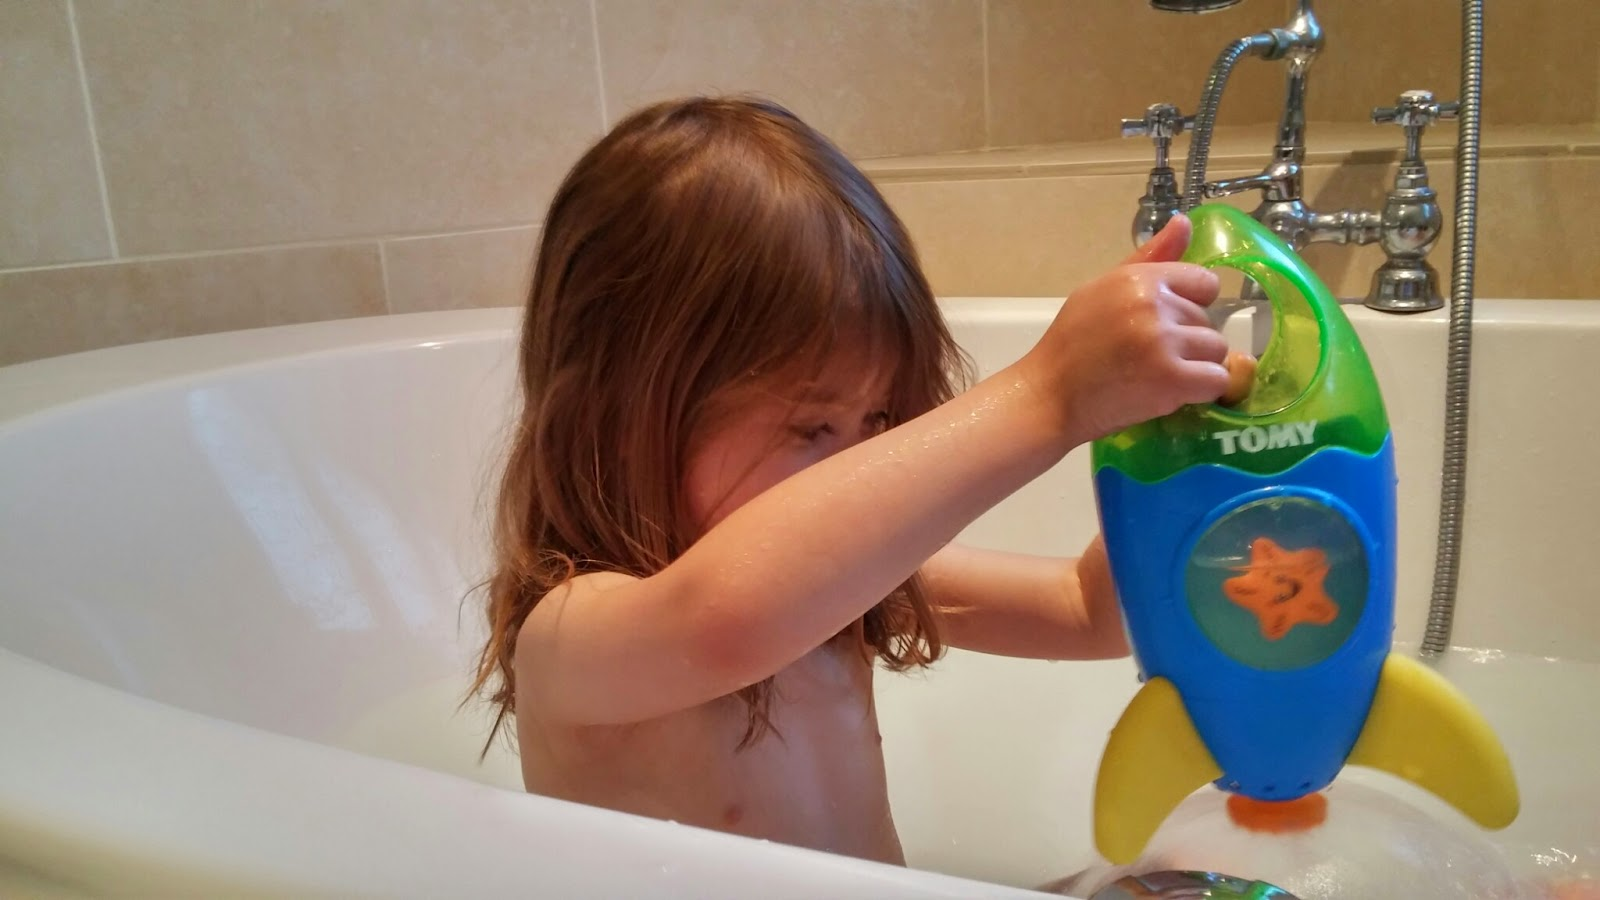 tomy rocket bath toy